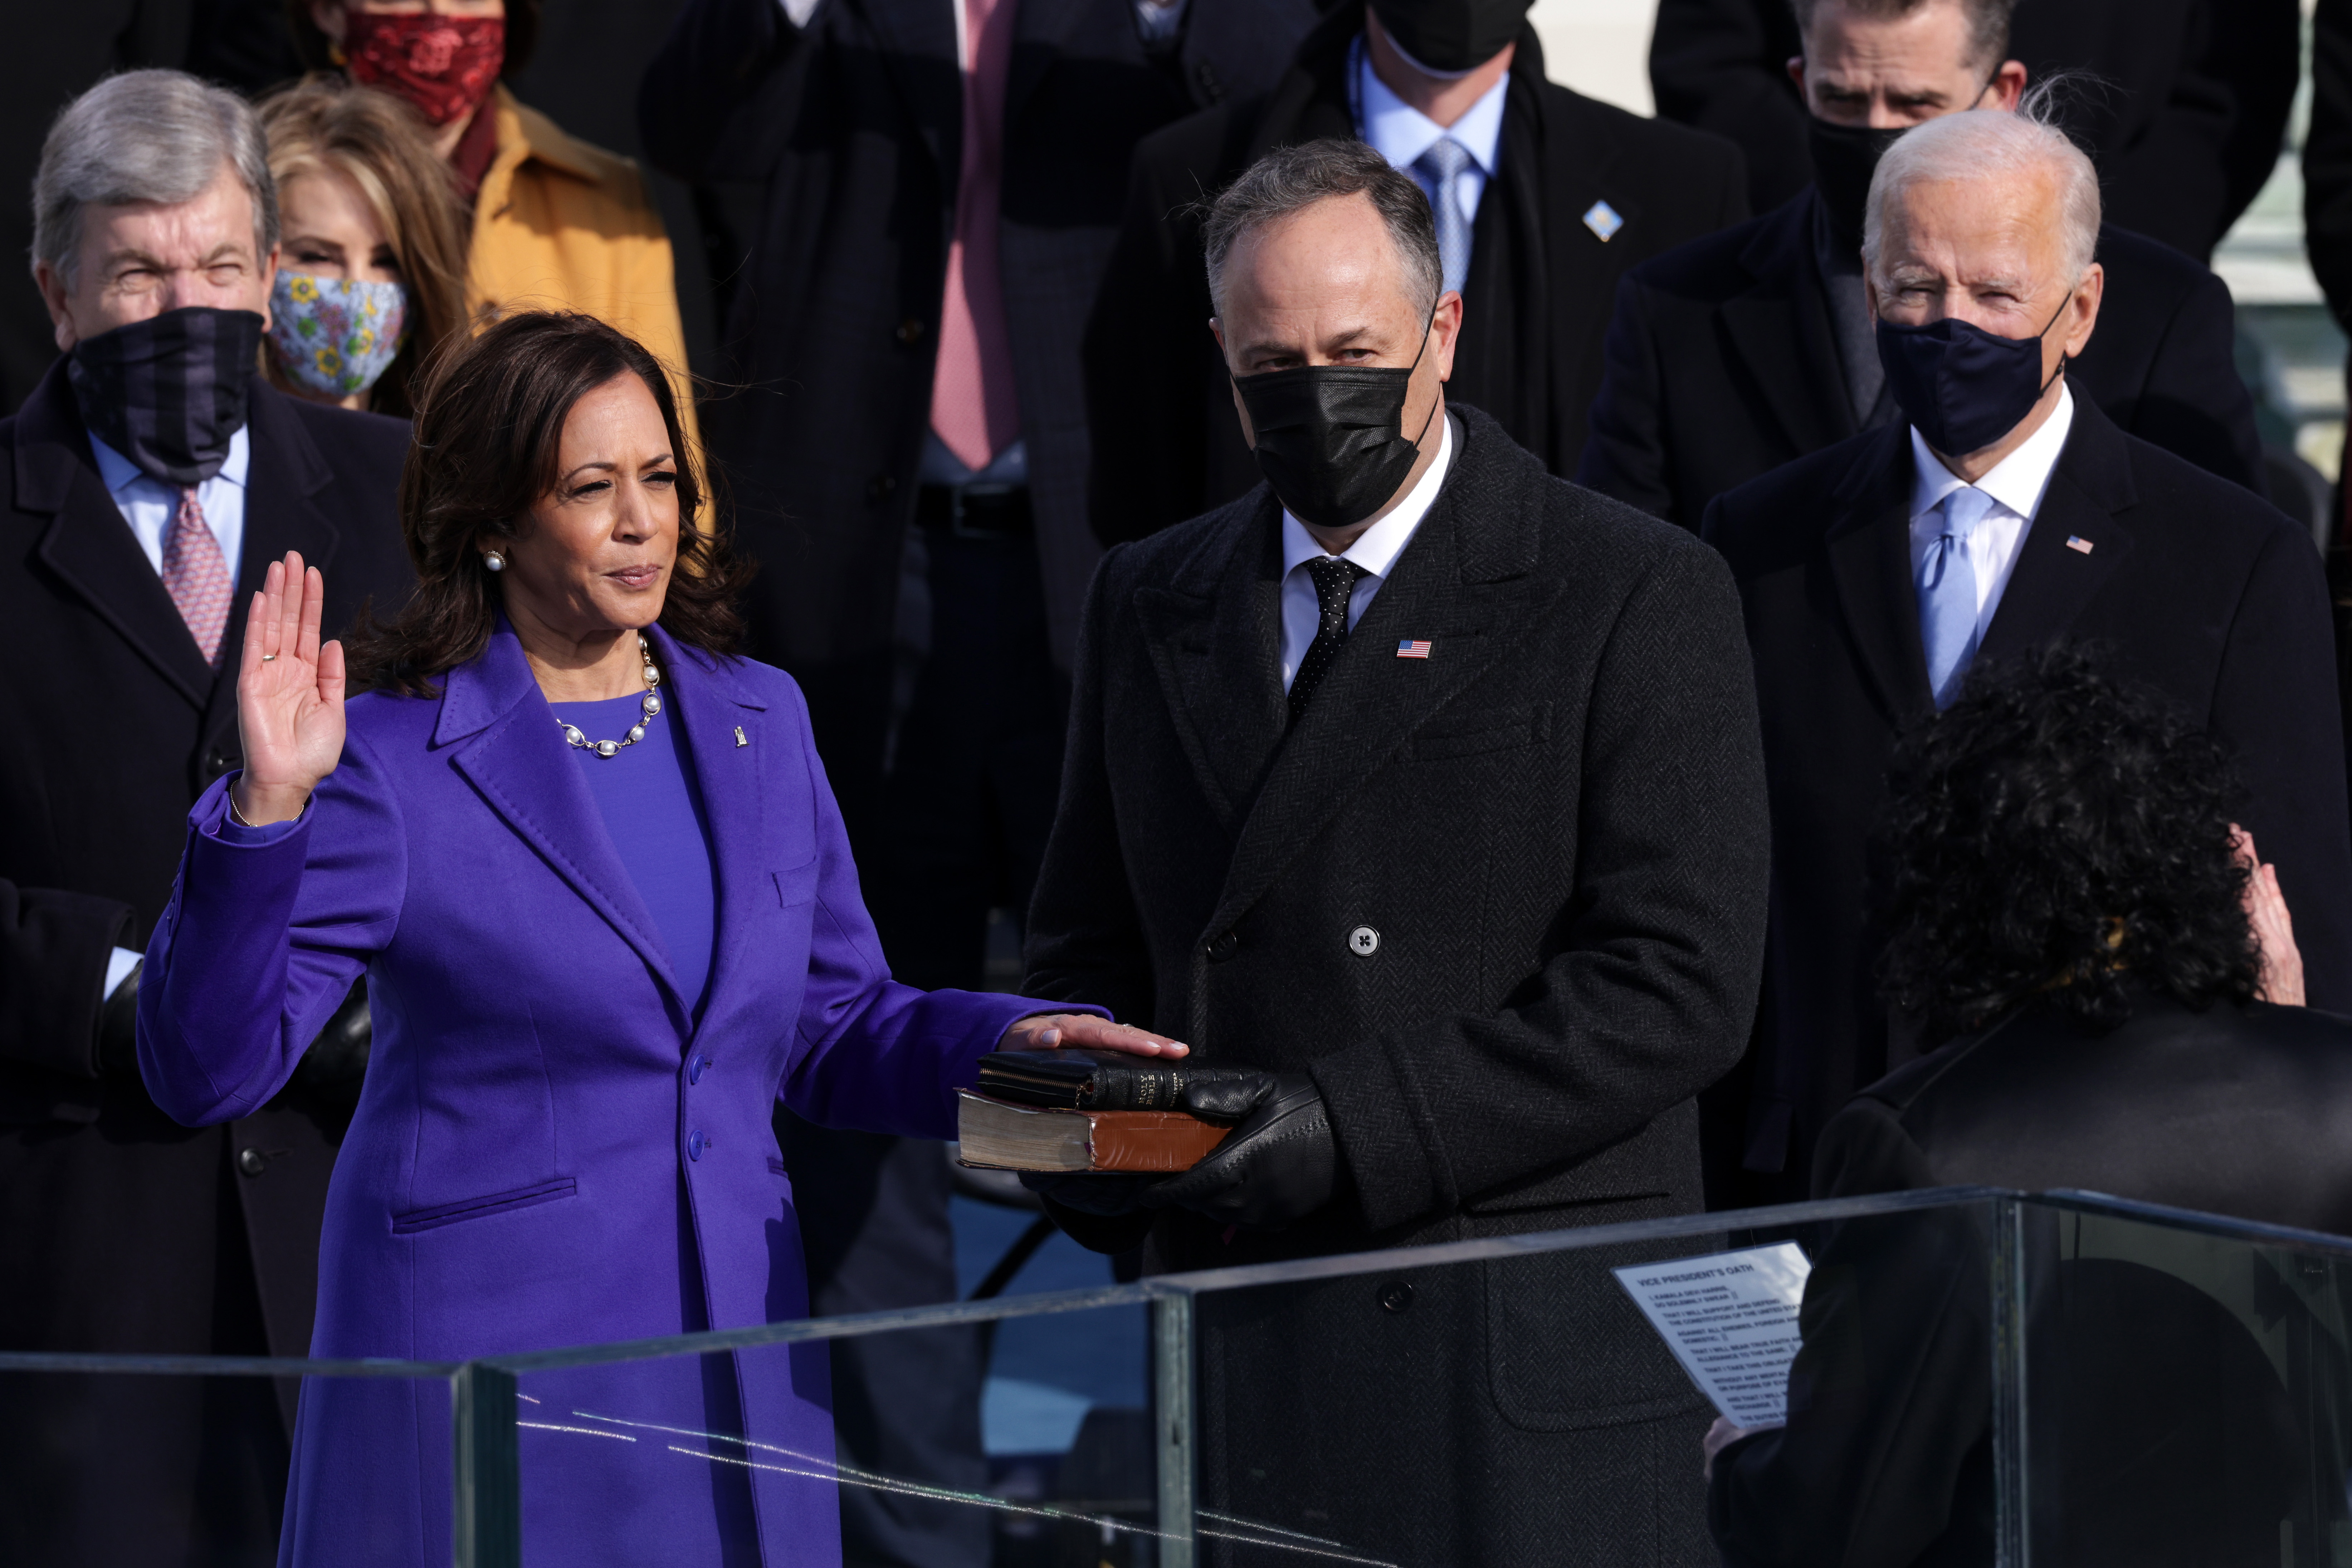 Kamala Harris is sworn in as U.S. Vice President as her husband Doug Emhoff looks on at the inauguration of U.S. President-elect Joe Biden on the West Front of the U.S. Capitol on January 20, 2021 in Washington, DC.